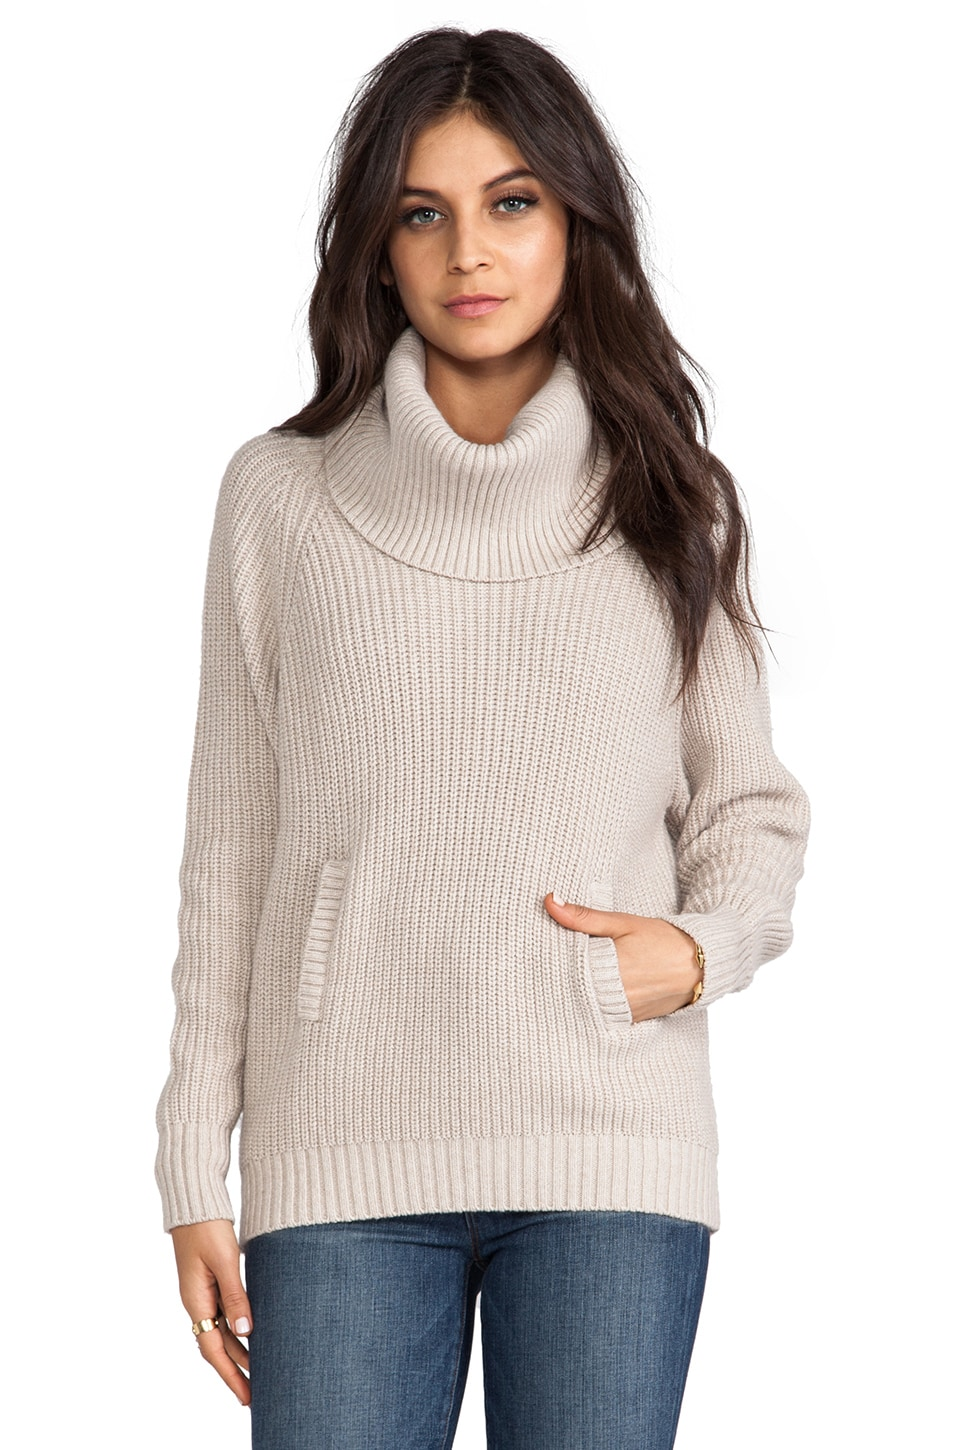 Central Park West Beaverton Cowl Neck Pullover in Oatmeal